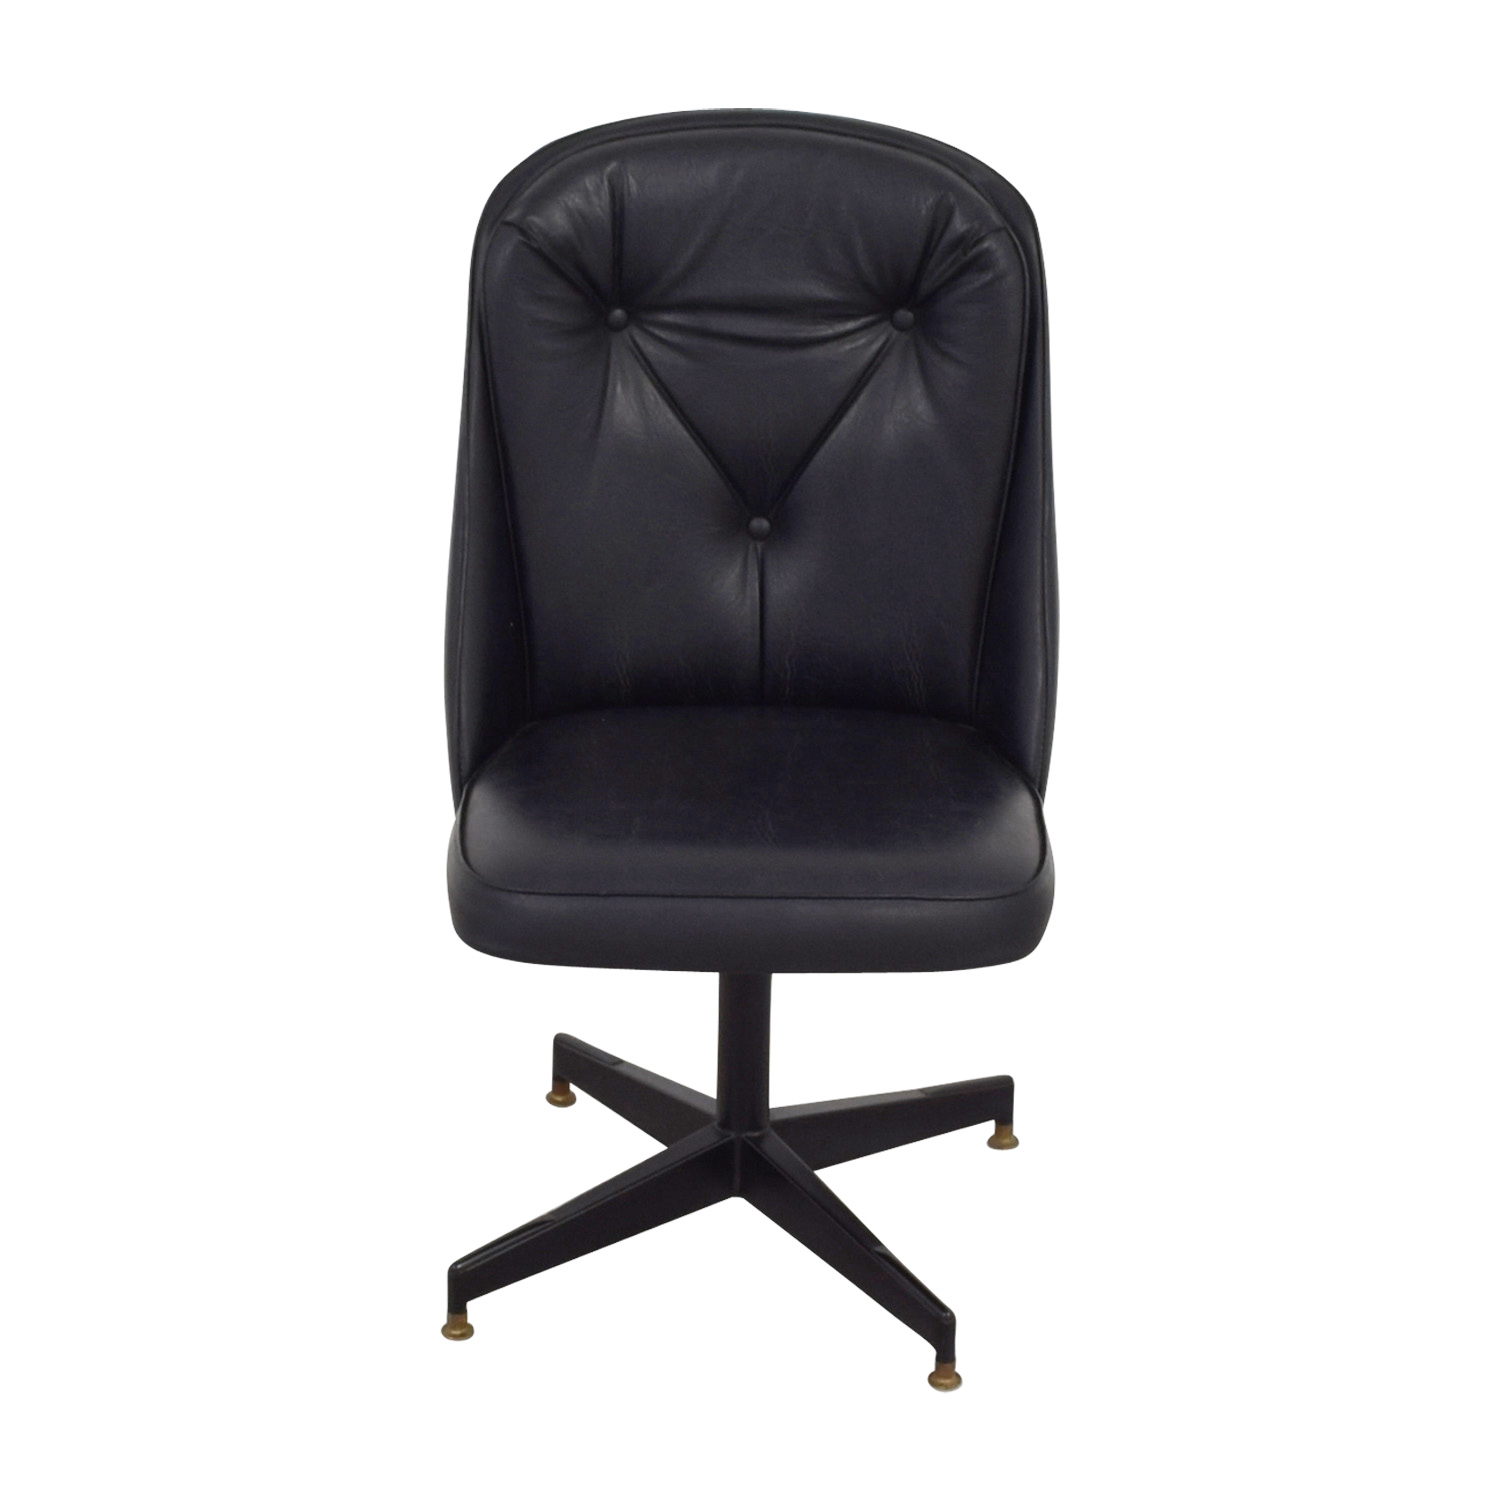 Black Leather Swivel Office Desk Chair for sale